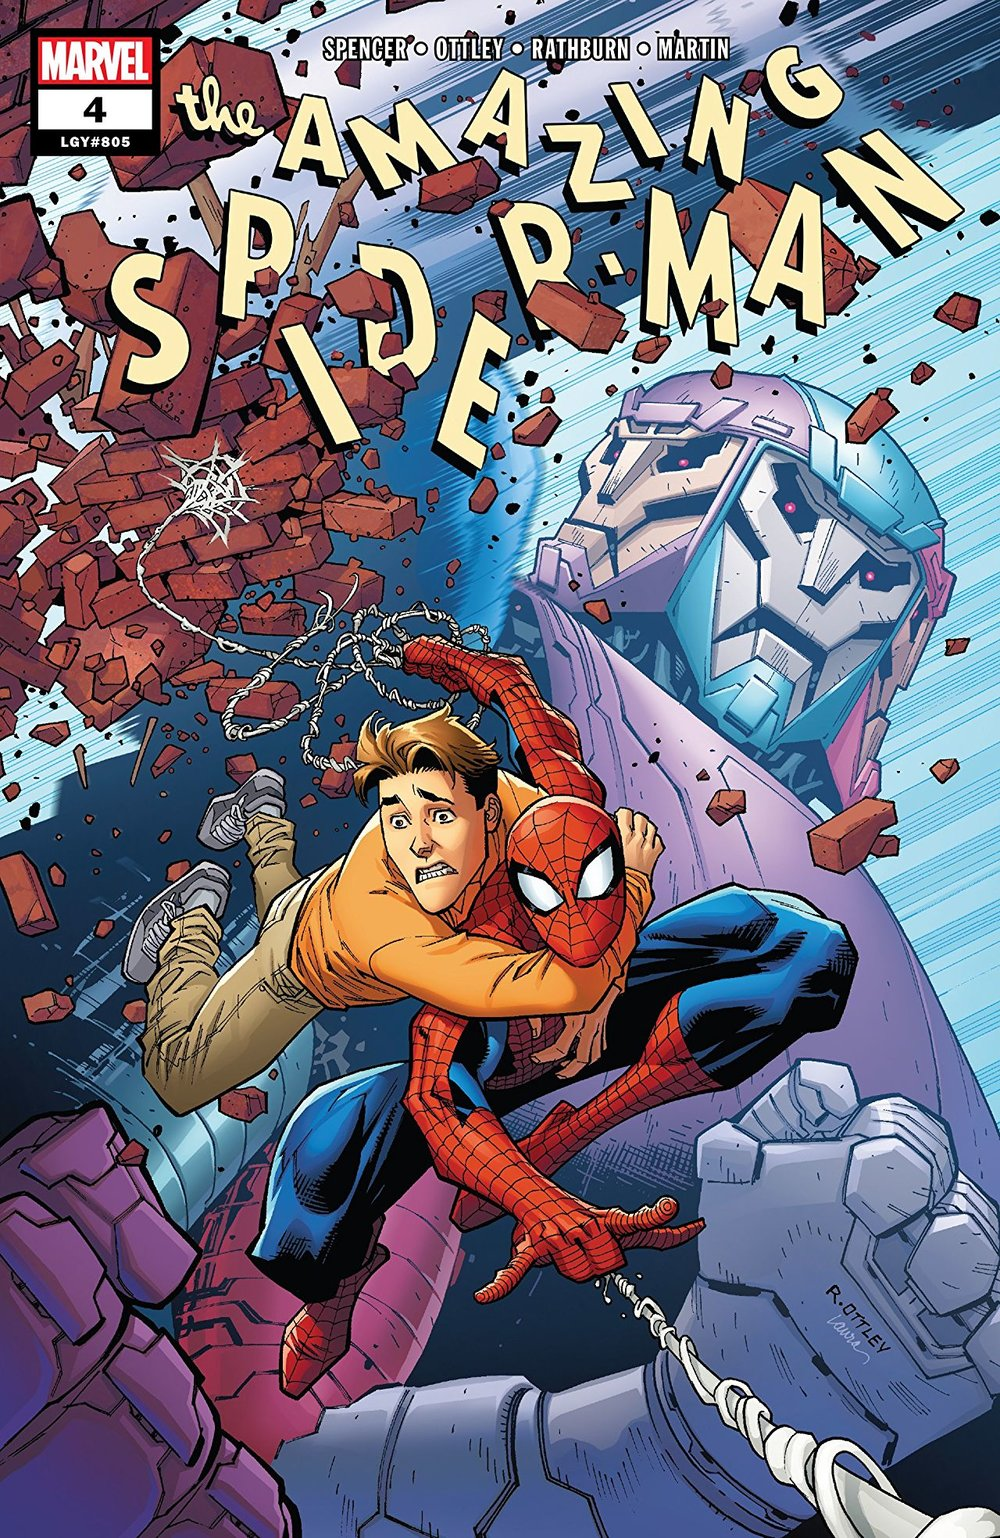 Image of the Amazing Spider-Man #4 cover. Spider-Man is shown carrying Peter on his back while behind looms a Tri-Sentinel.